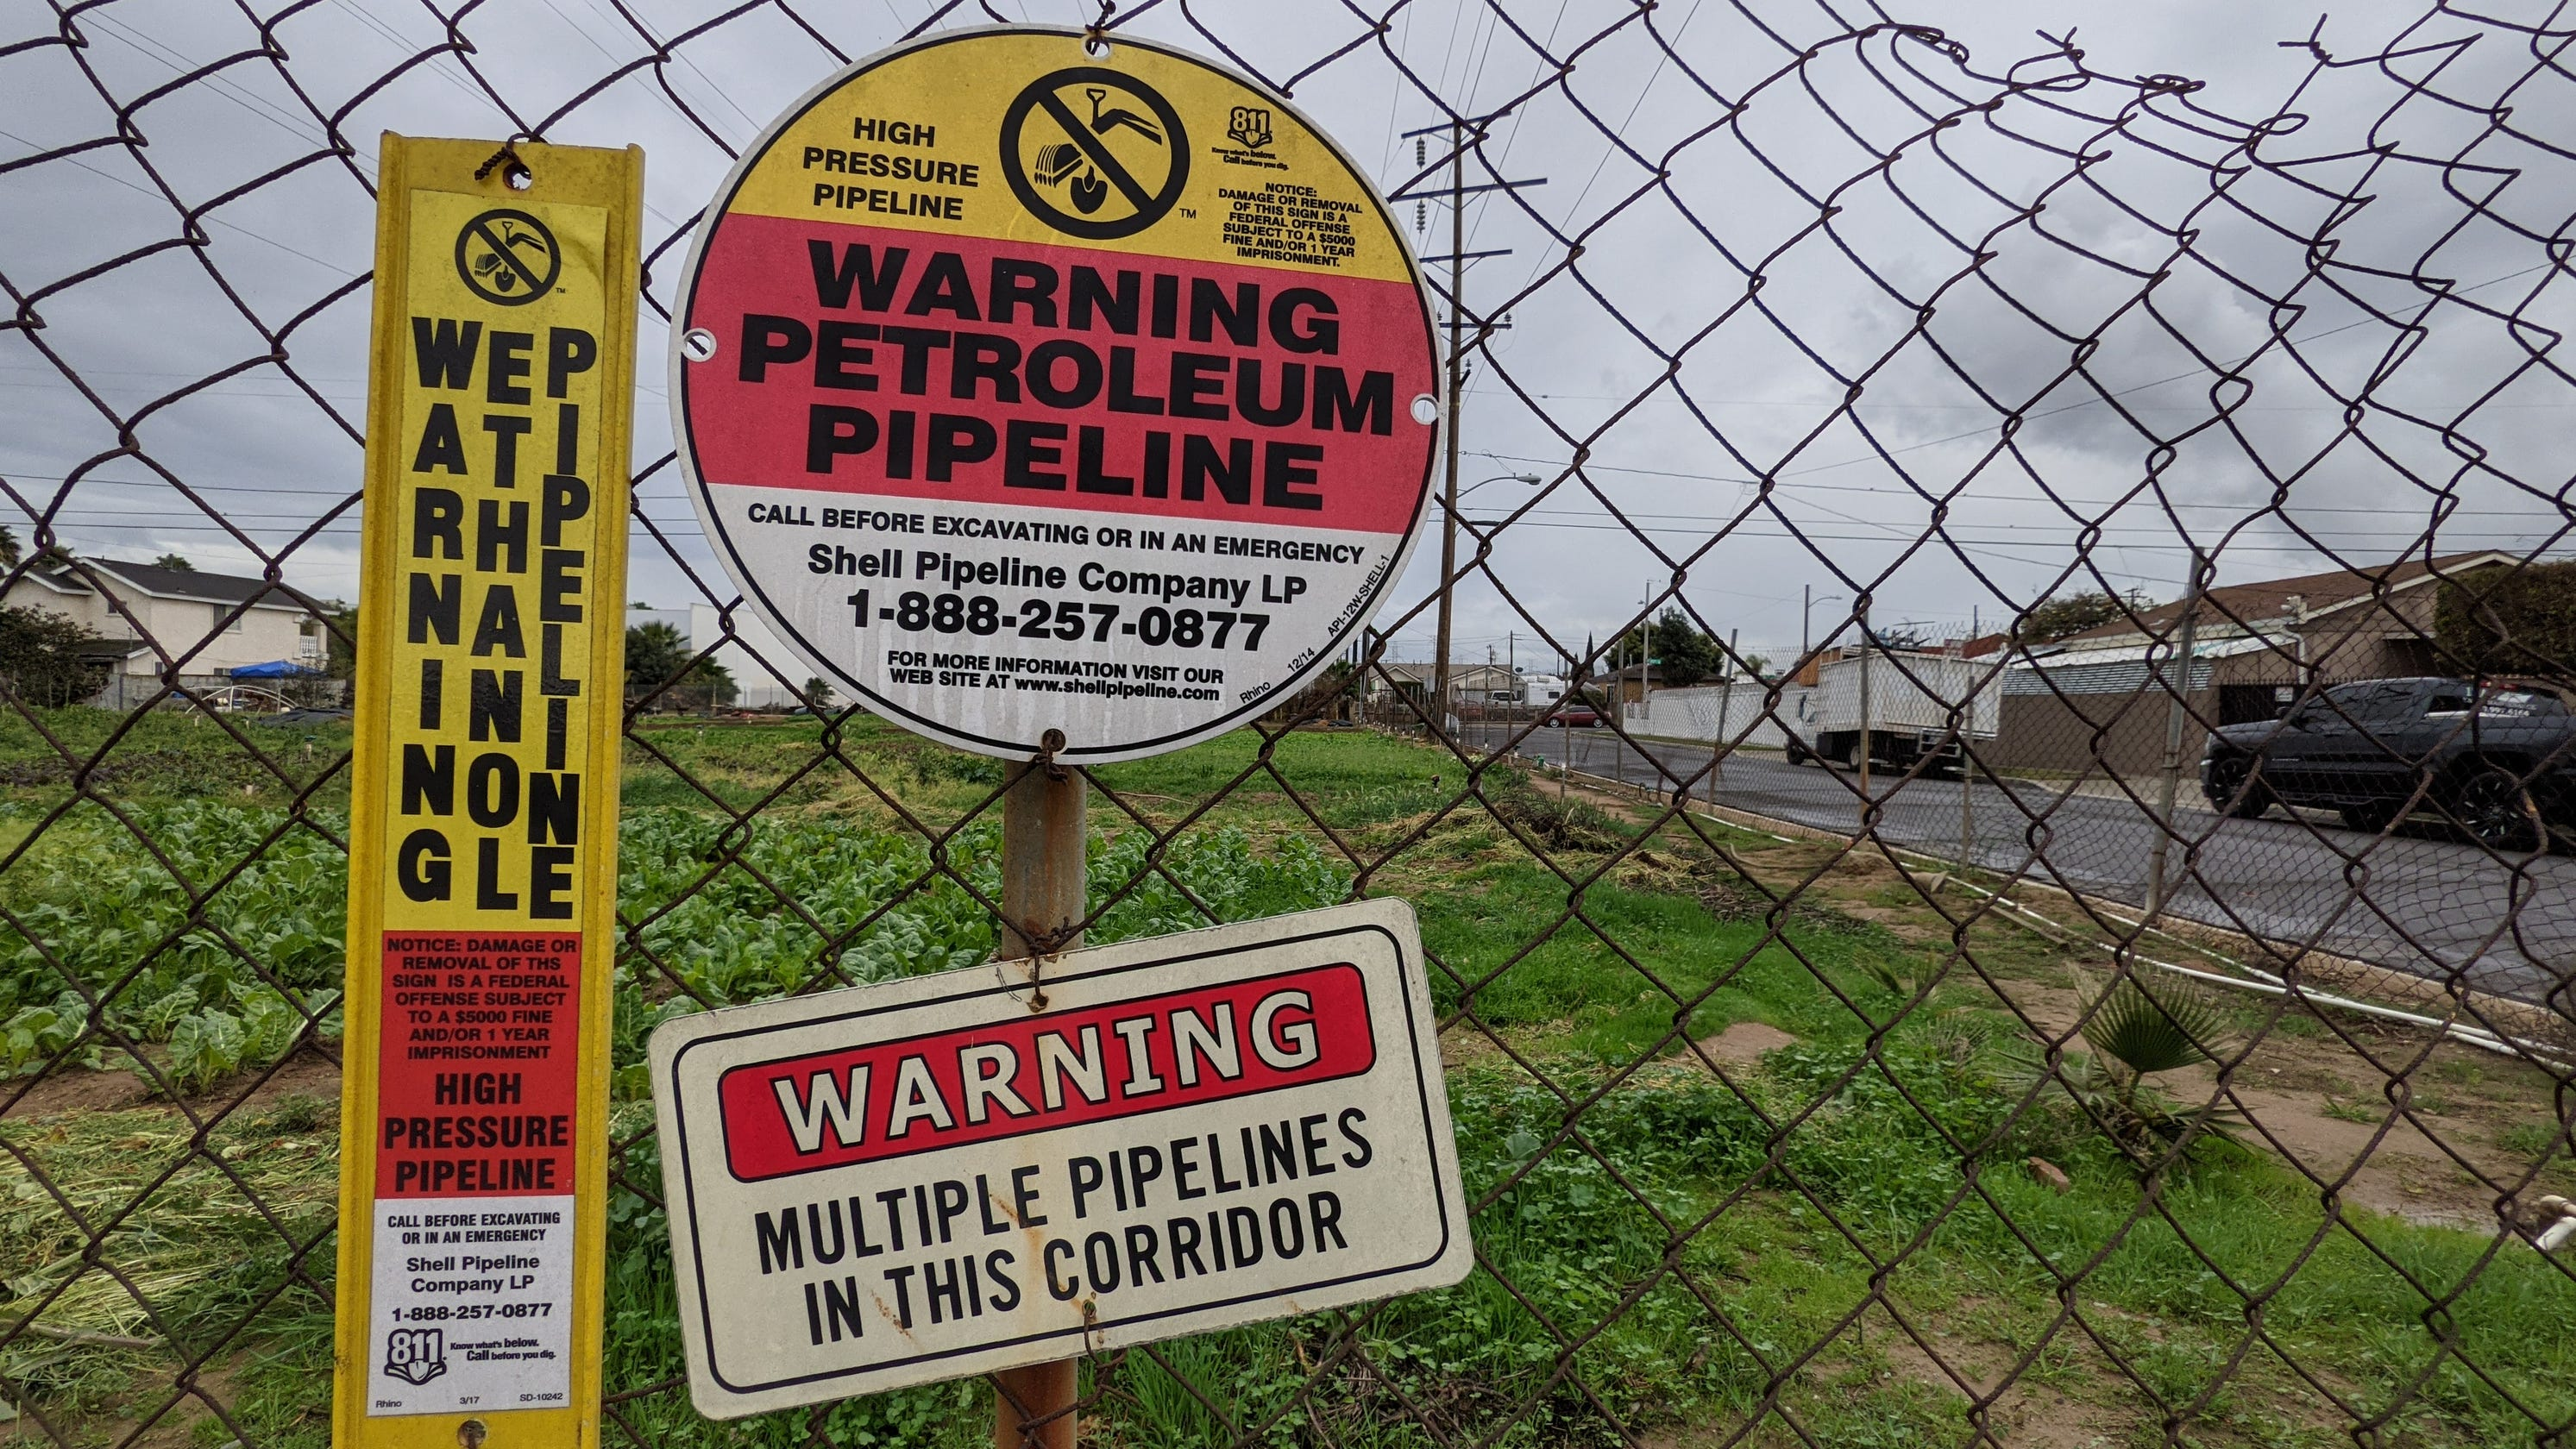 Communities worry about health as states ignore climate pledges, build oil infrastructure